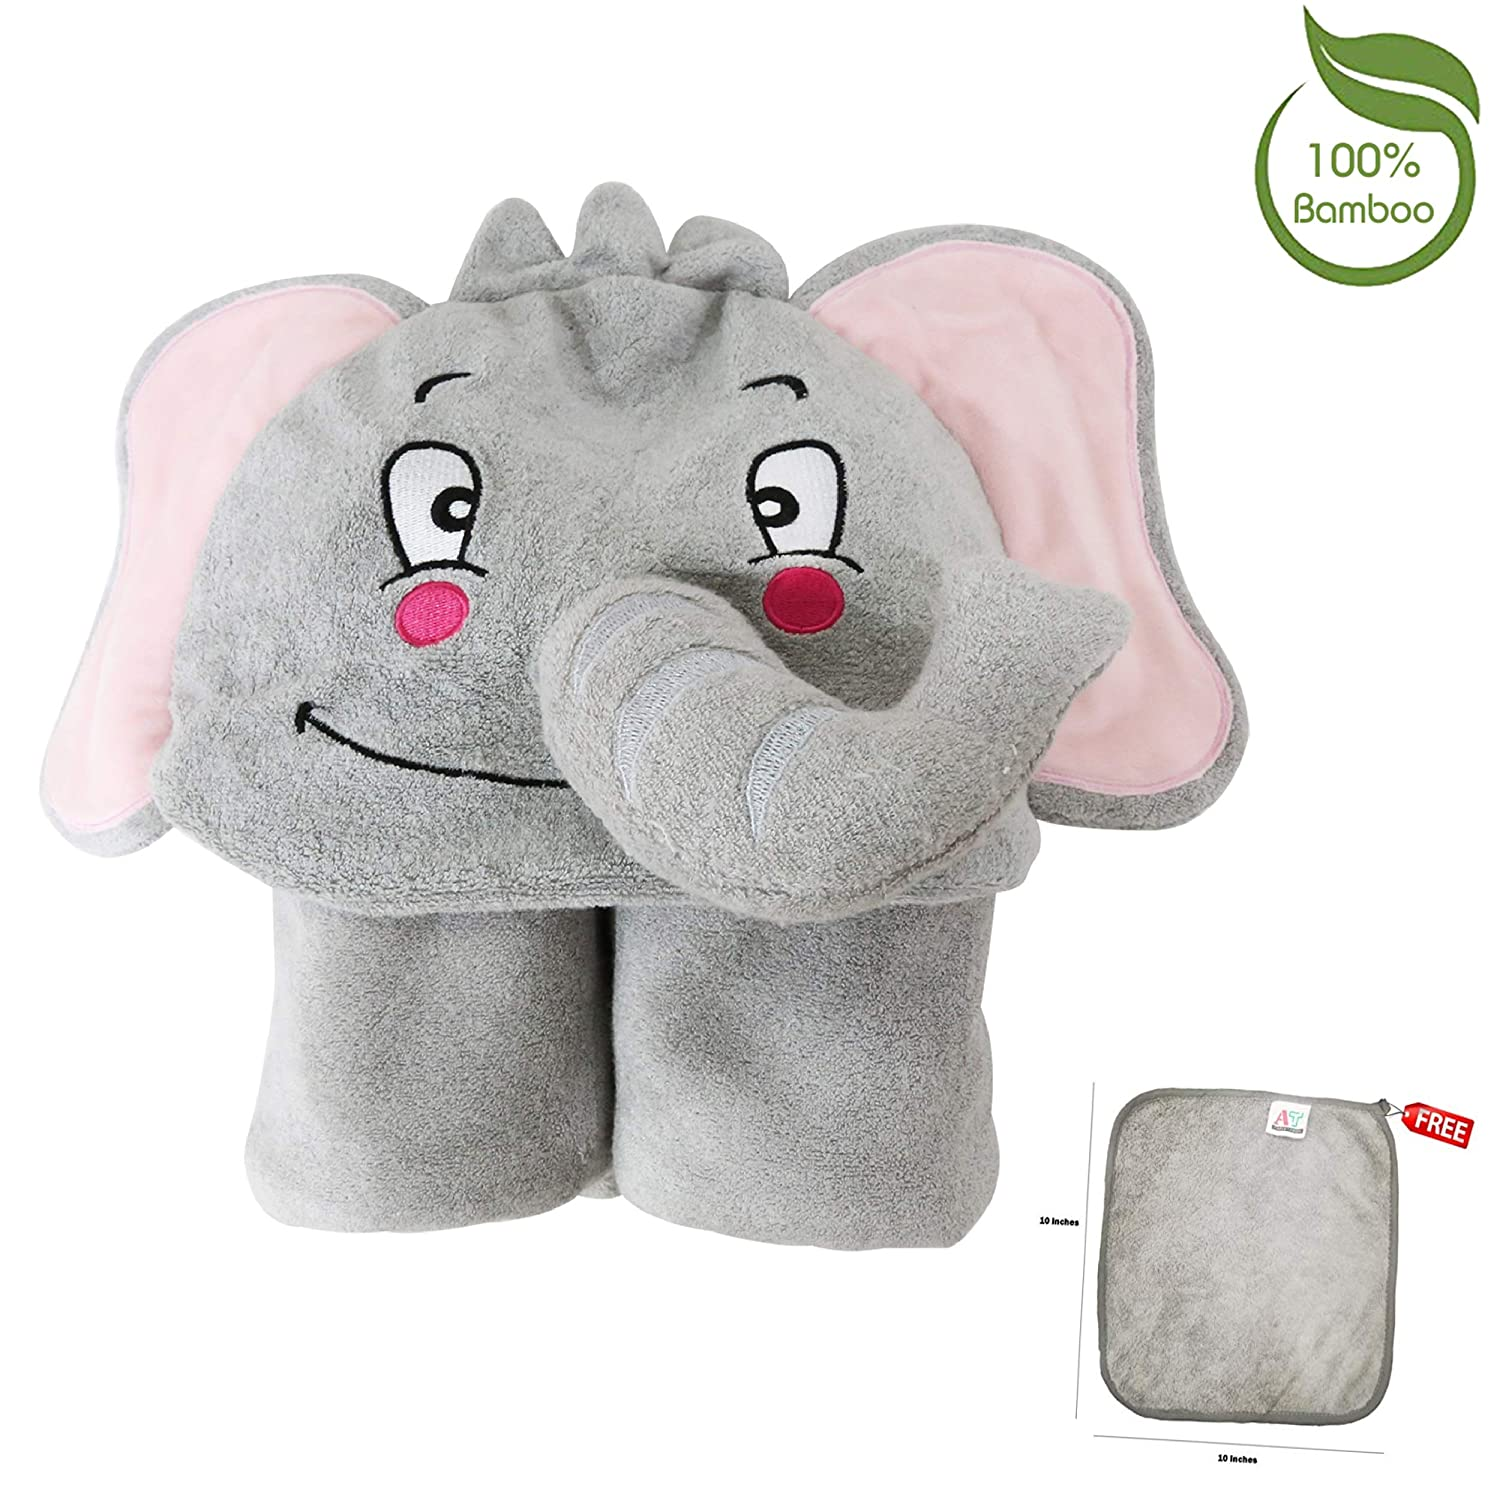 Premium Hooded Baby Towel | 100% Organic Bamboo | Free Washcloth | Extra Thick 680 GSM | 40x28 for Newborns Infants & Toddlers | Great for Bath Pool & Beach | 3D Elephant | Gray AshyTrade ASHY001ELPH